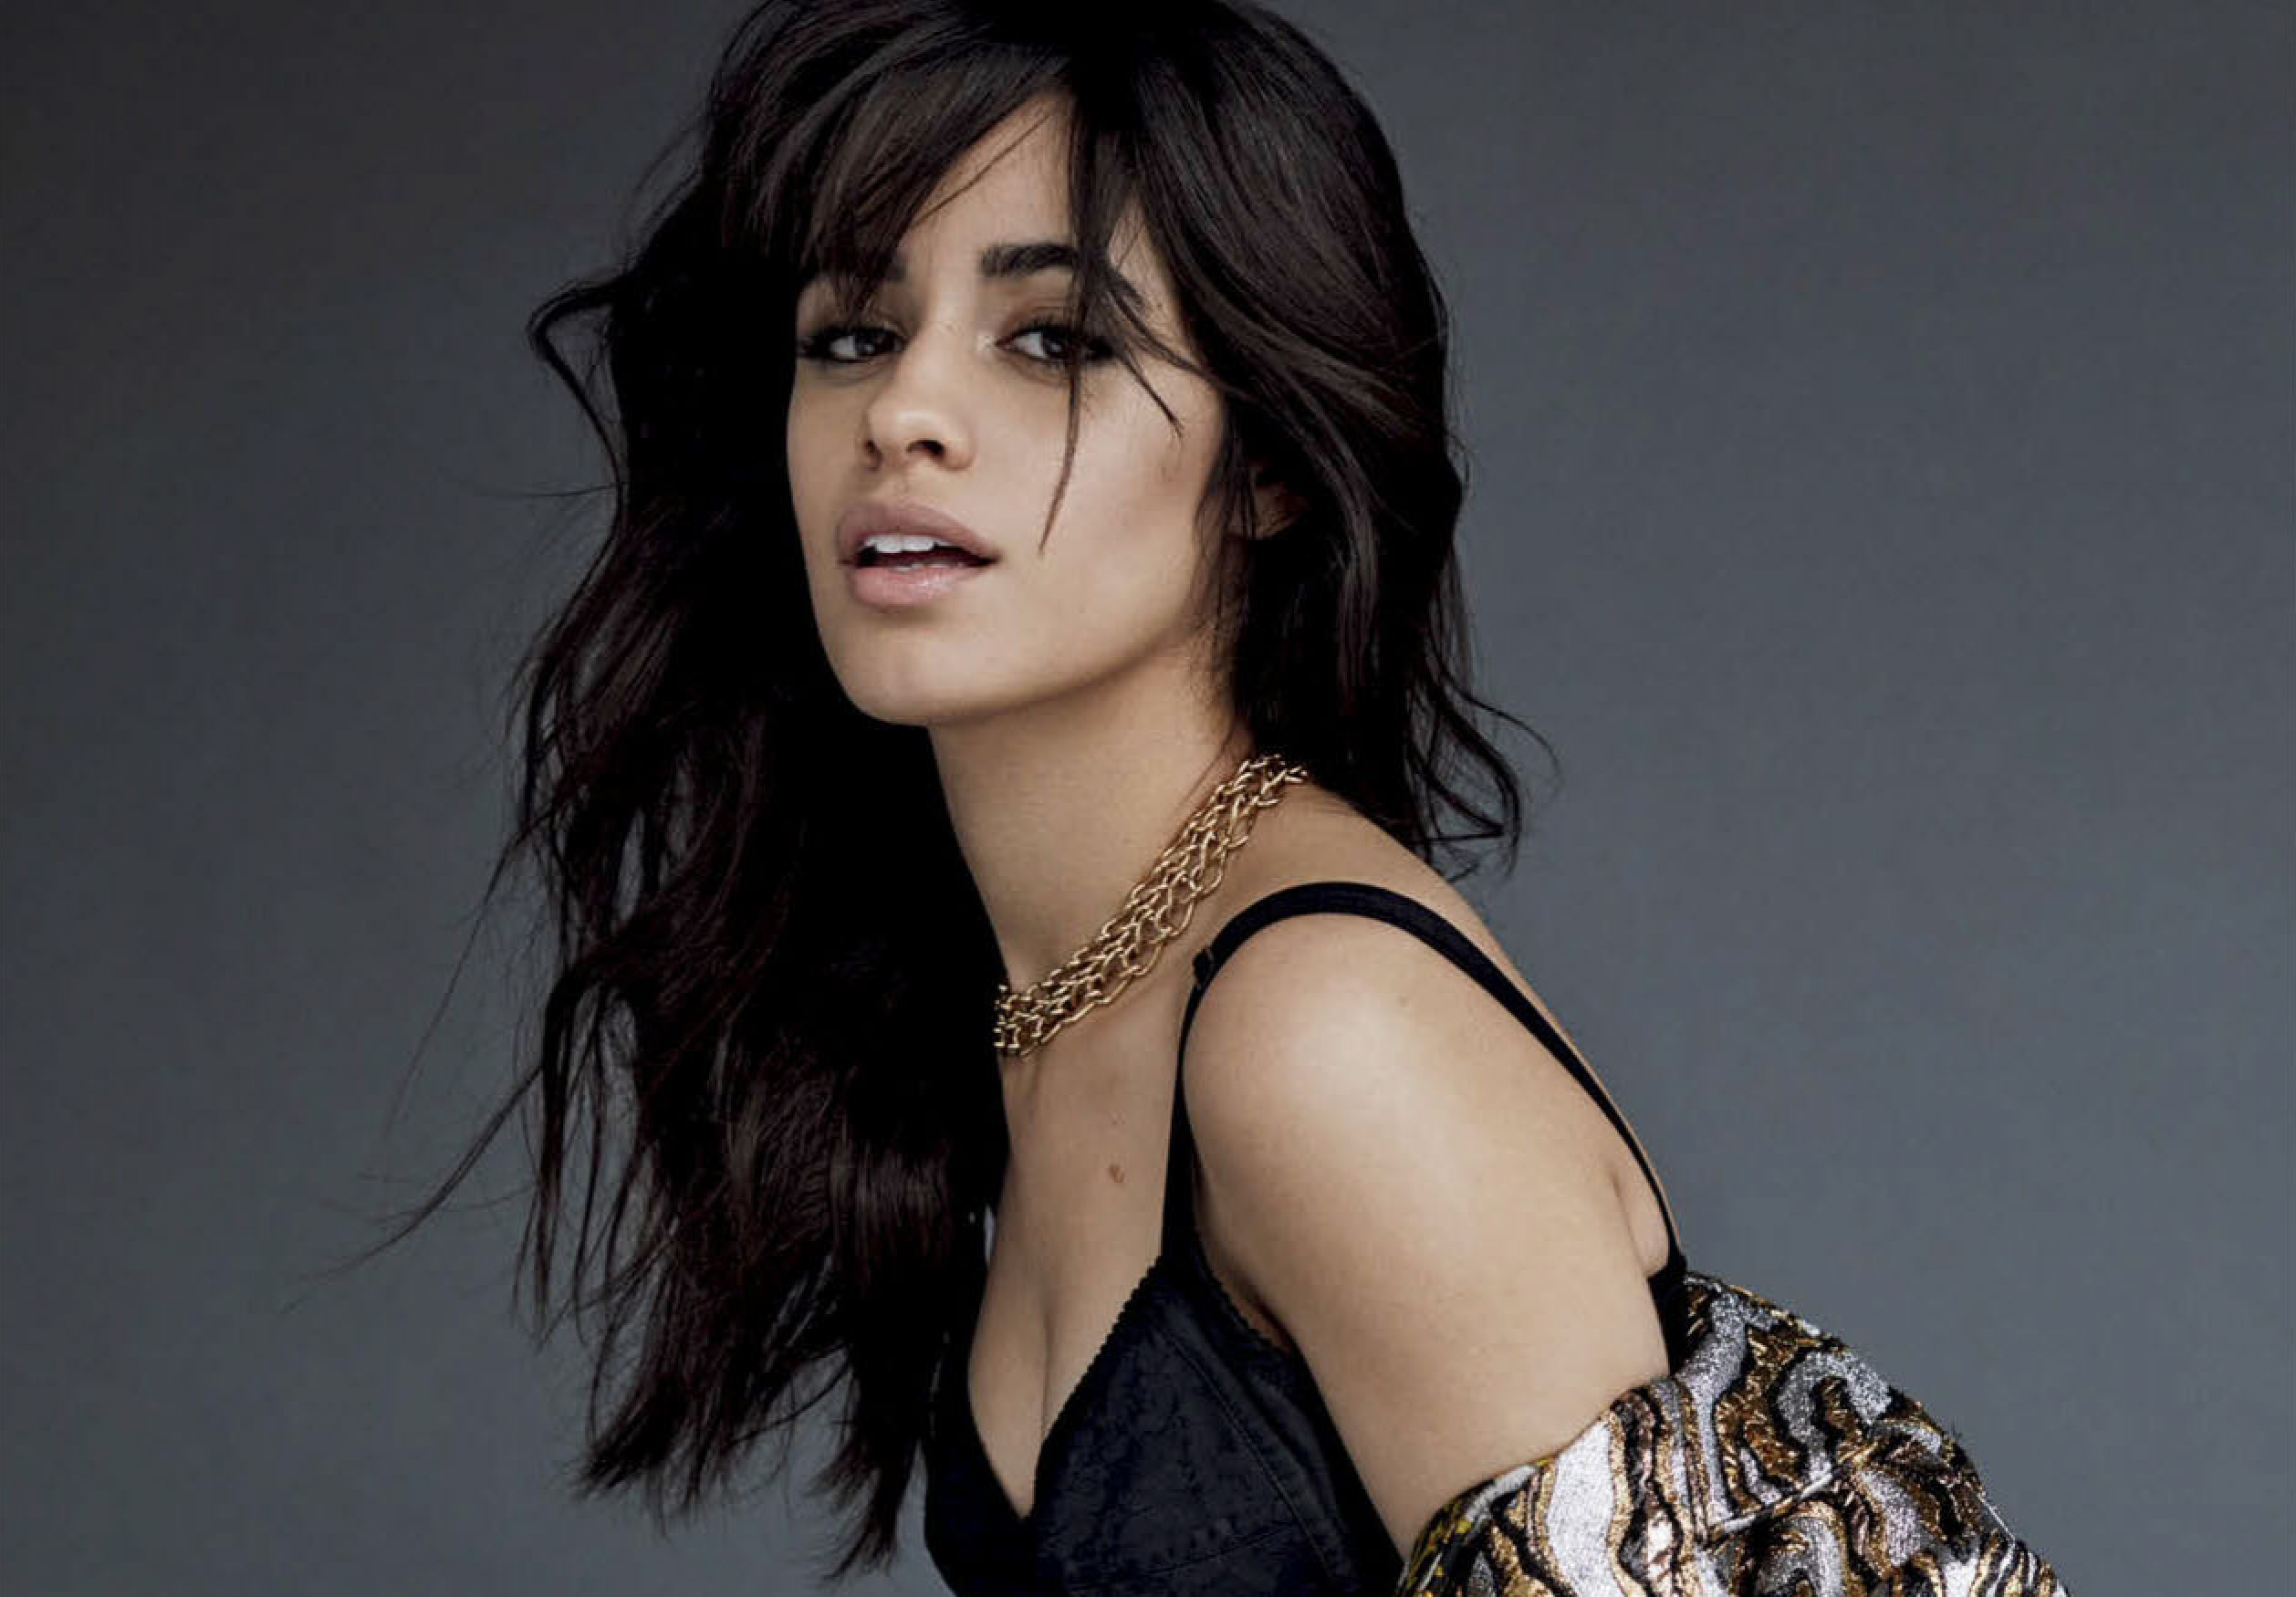 camila cabello wallpaper background 64584